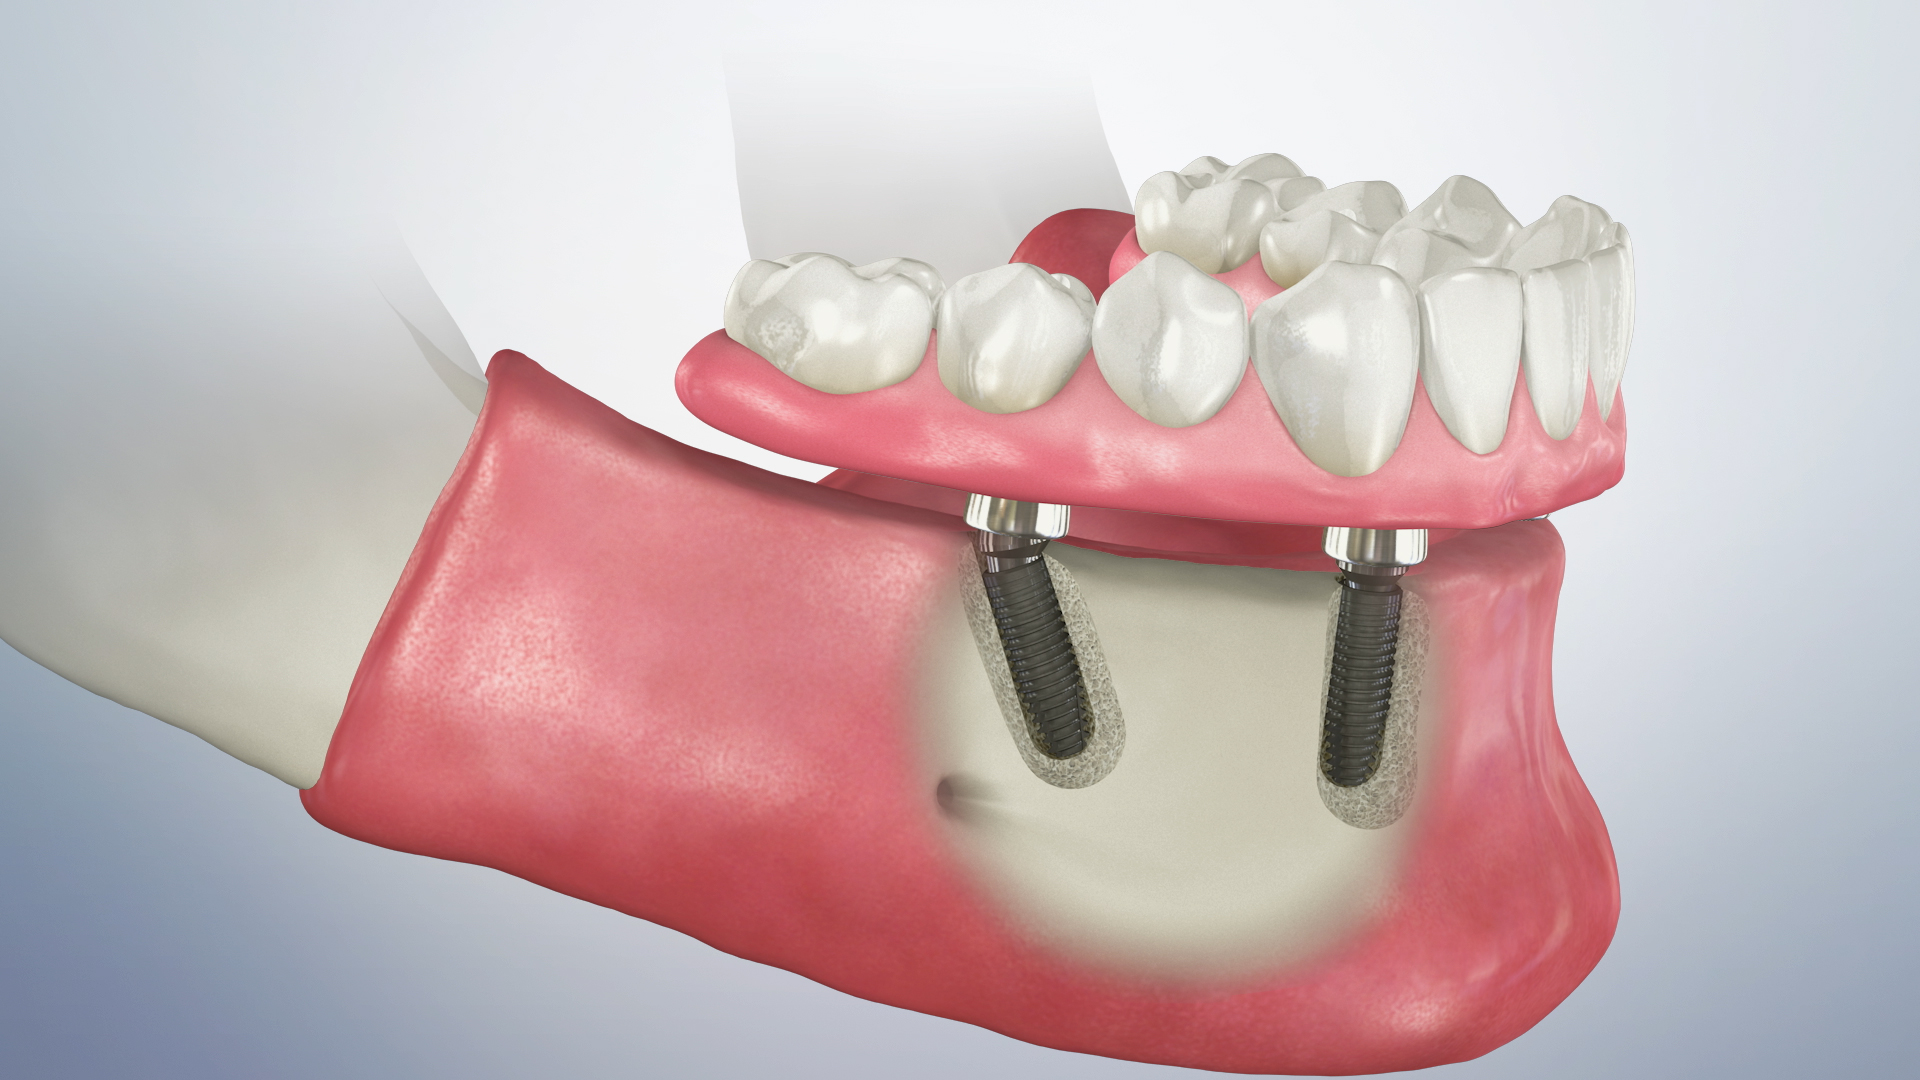 Thumbnail for a video on Fixed Hybrid Dentures